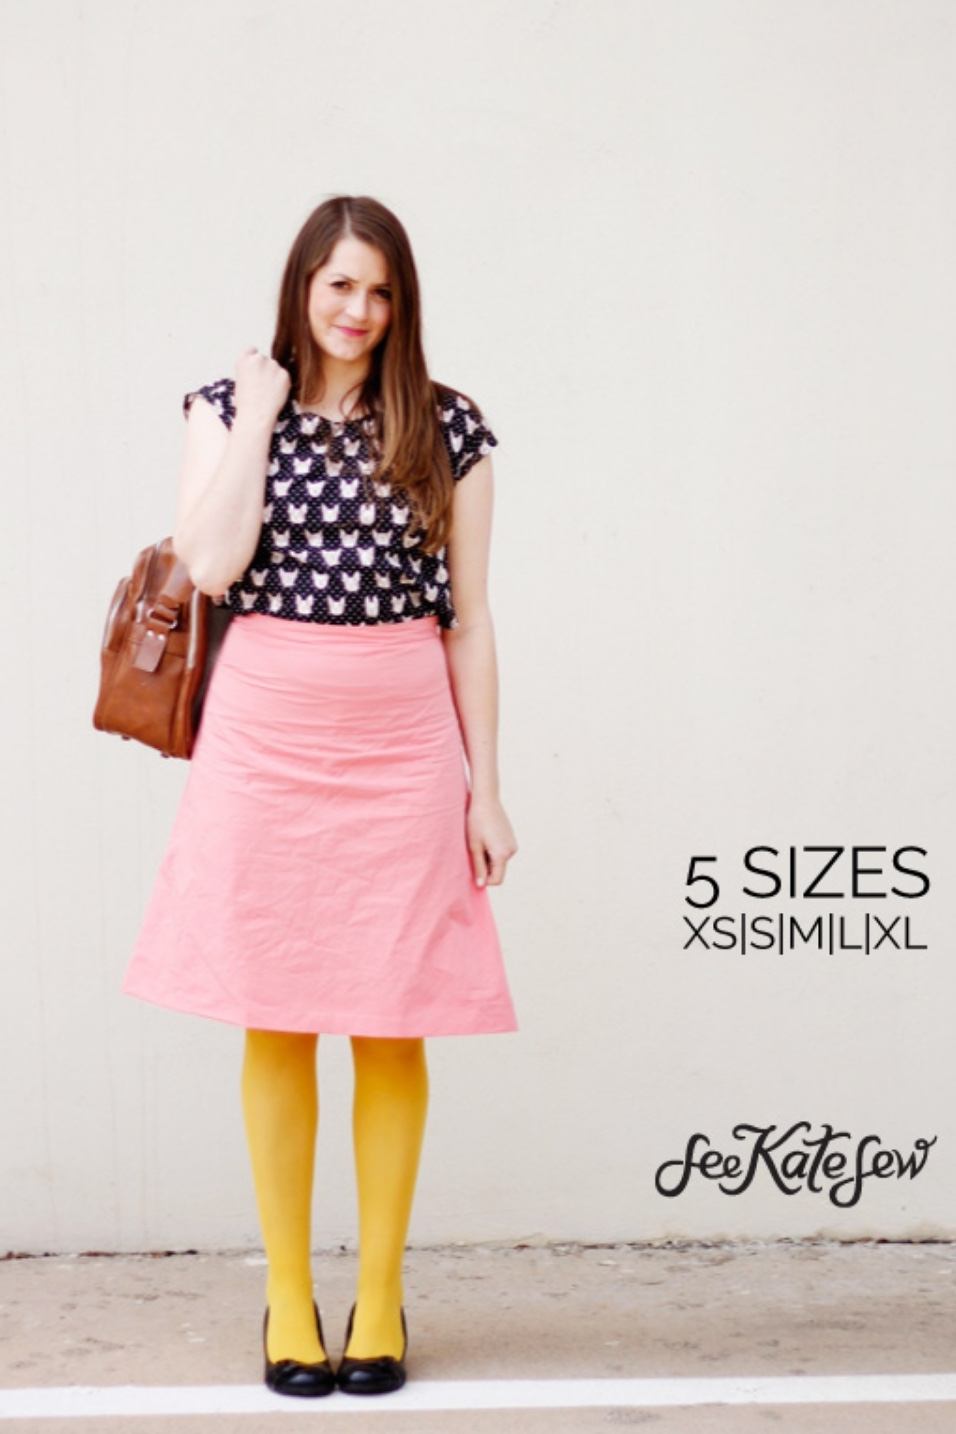 A-line Skirt from See Kate Sew